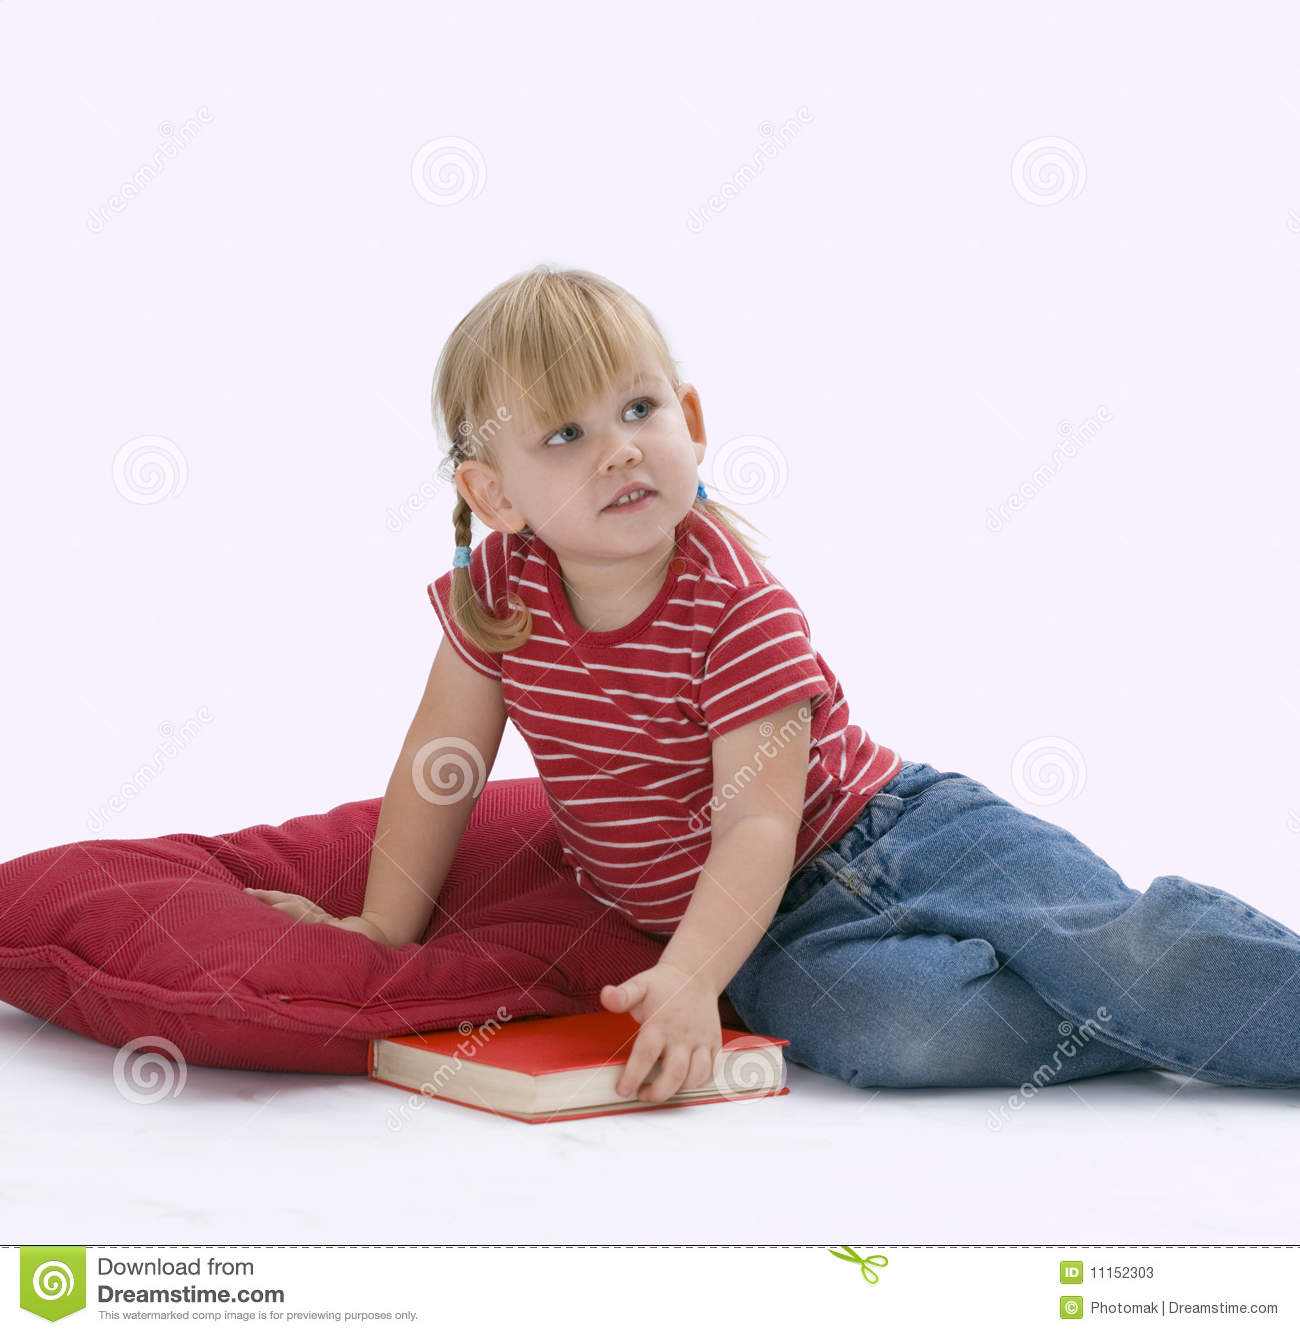 Pillows To Sit On The Floor : Sitting On Floor, On Red Pillow Little Girl Stock Photos - Image: 11152303